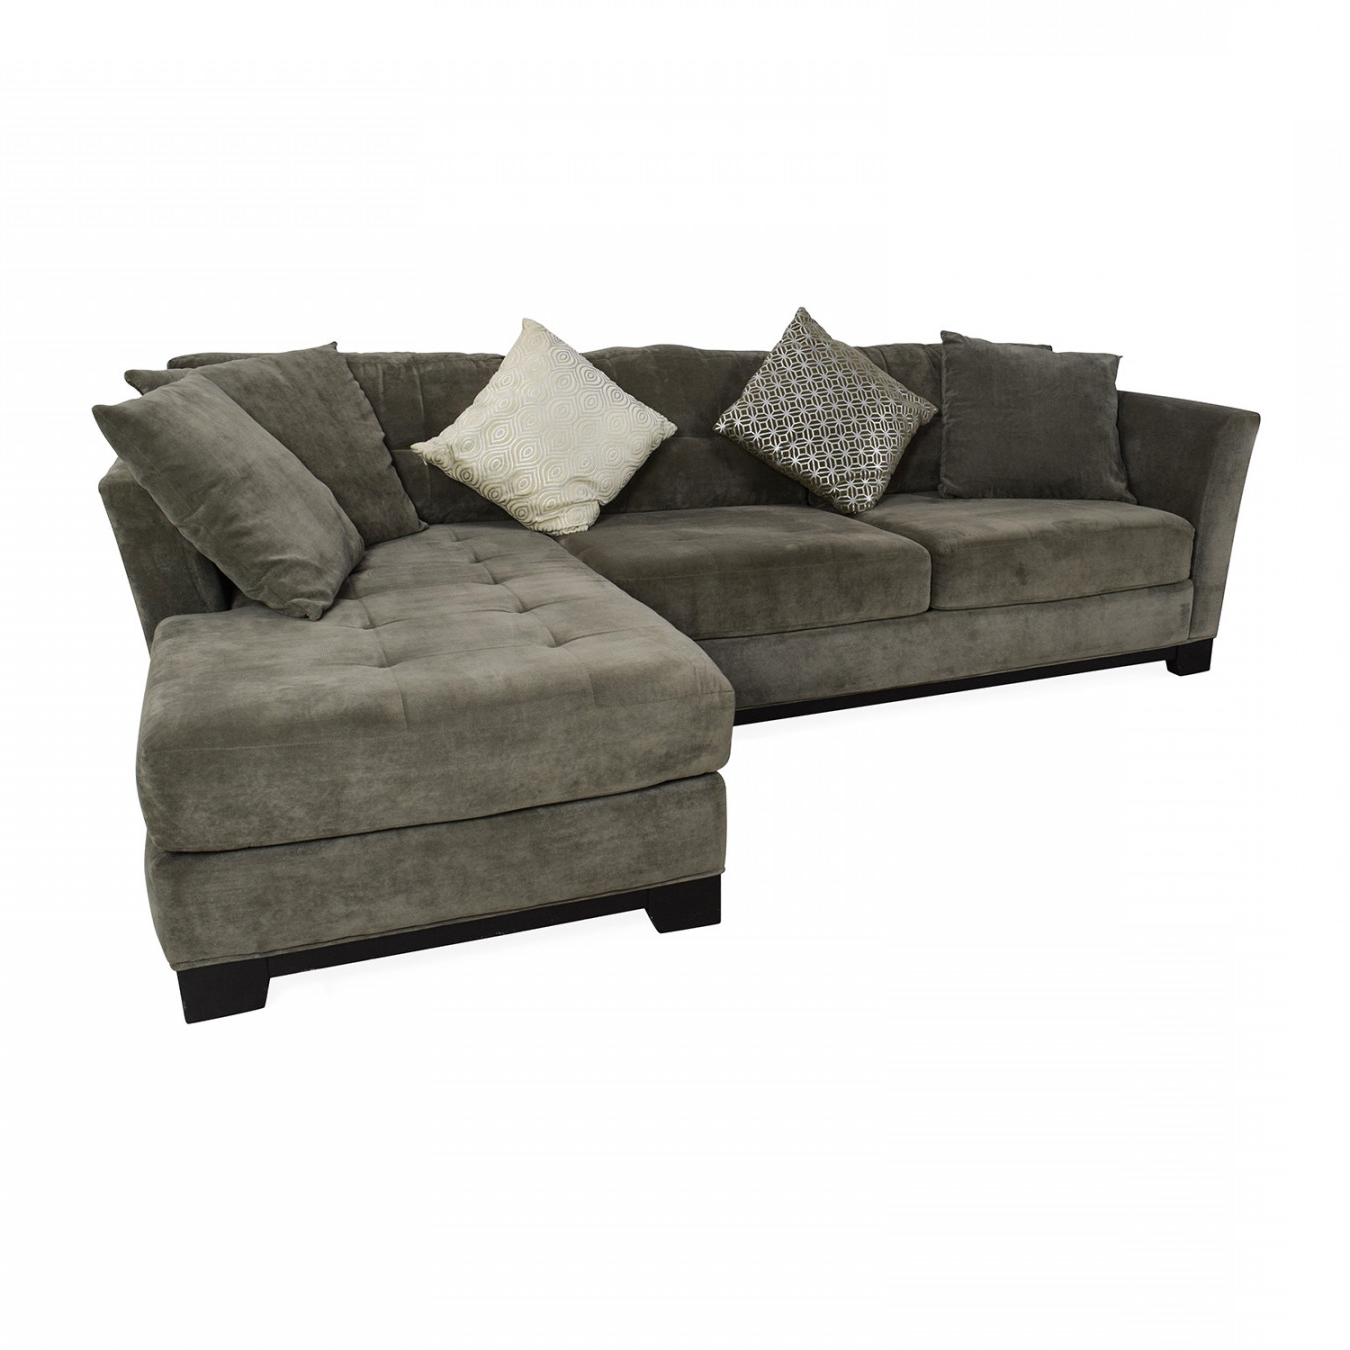 Macys Sectional Sofa With Regard To Macys Sectional Sofas (View 7 of 20)